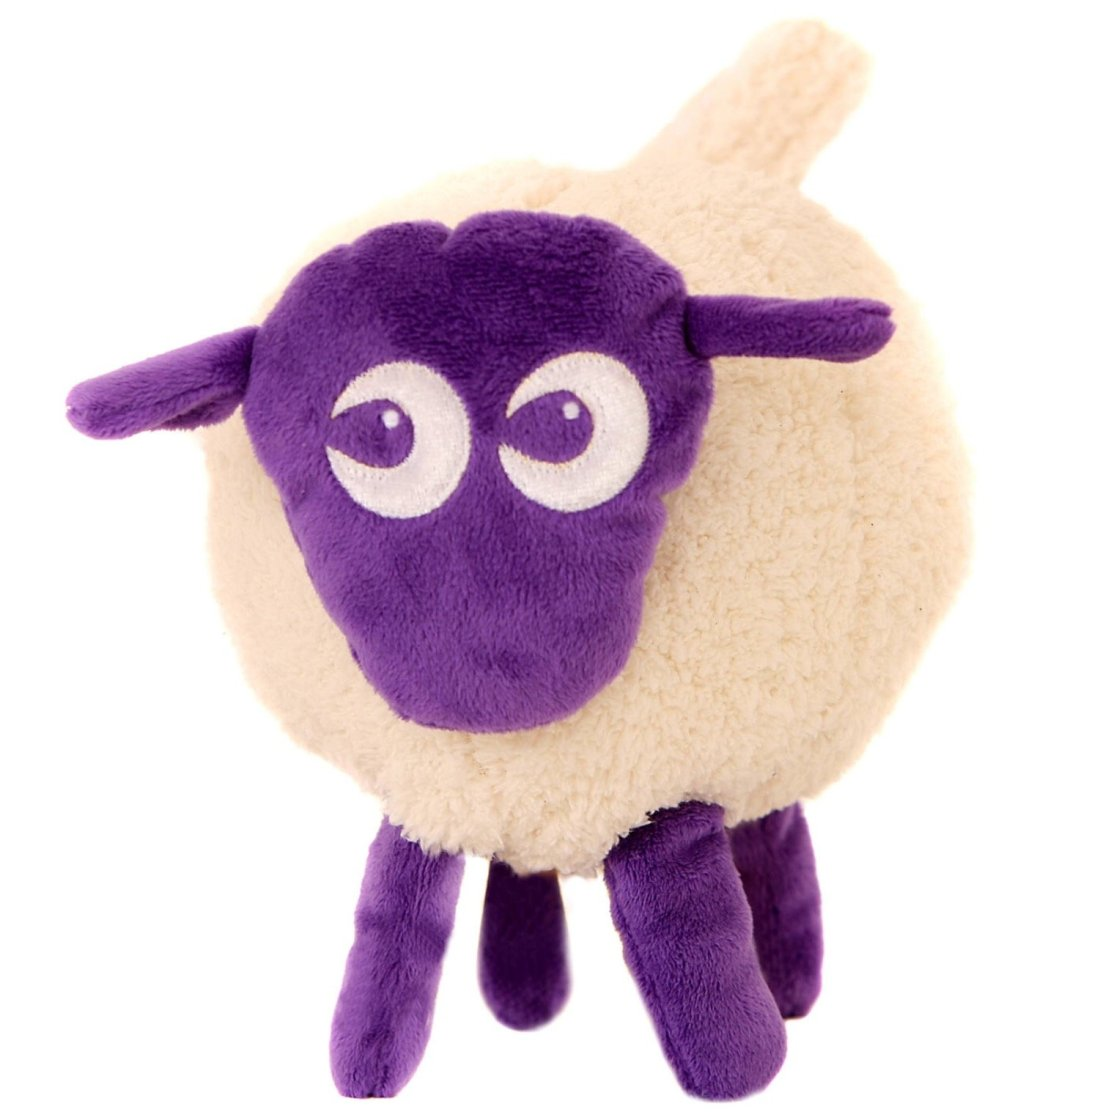 Ewan the Dream Sheep - helps to ease a baby towards self soothing